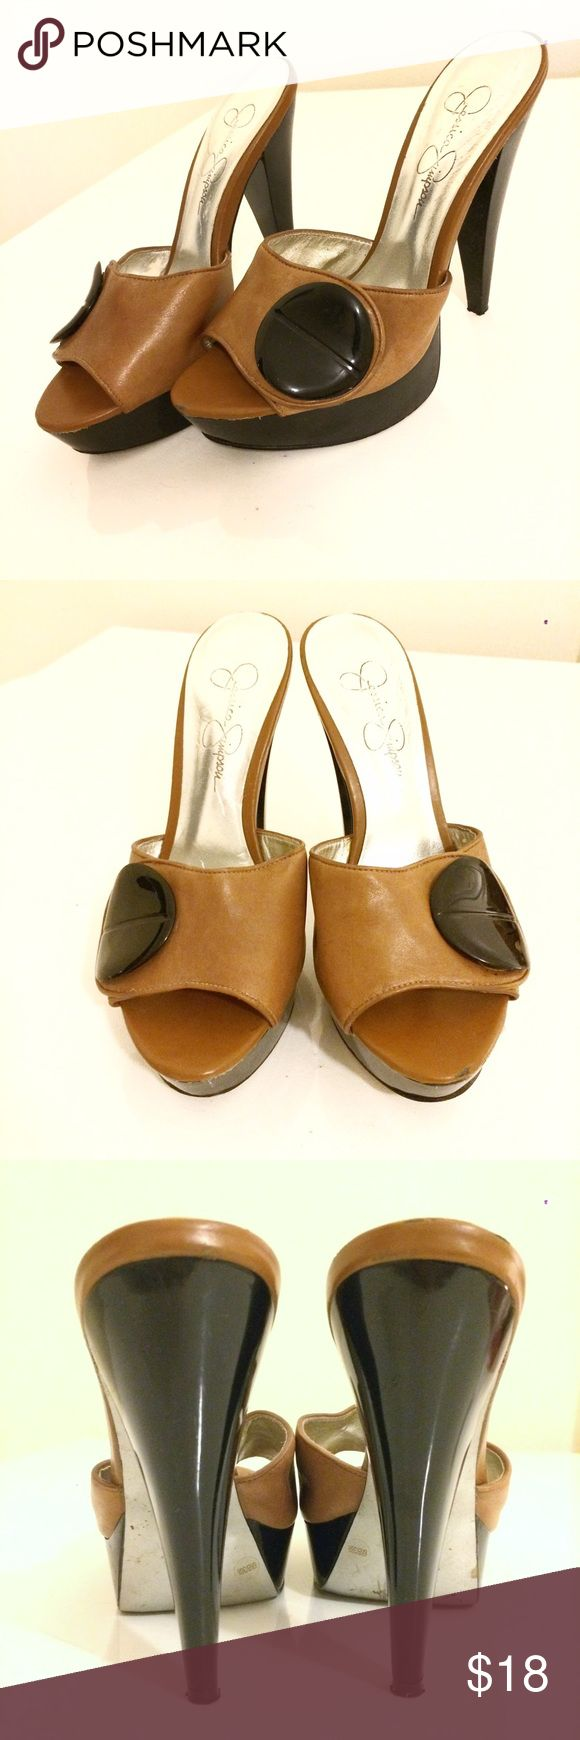 Jessica Simpson leather platform sandals! Jessica Simpson leather platform sandals! Jessica Simpson Shoes Platforms